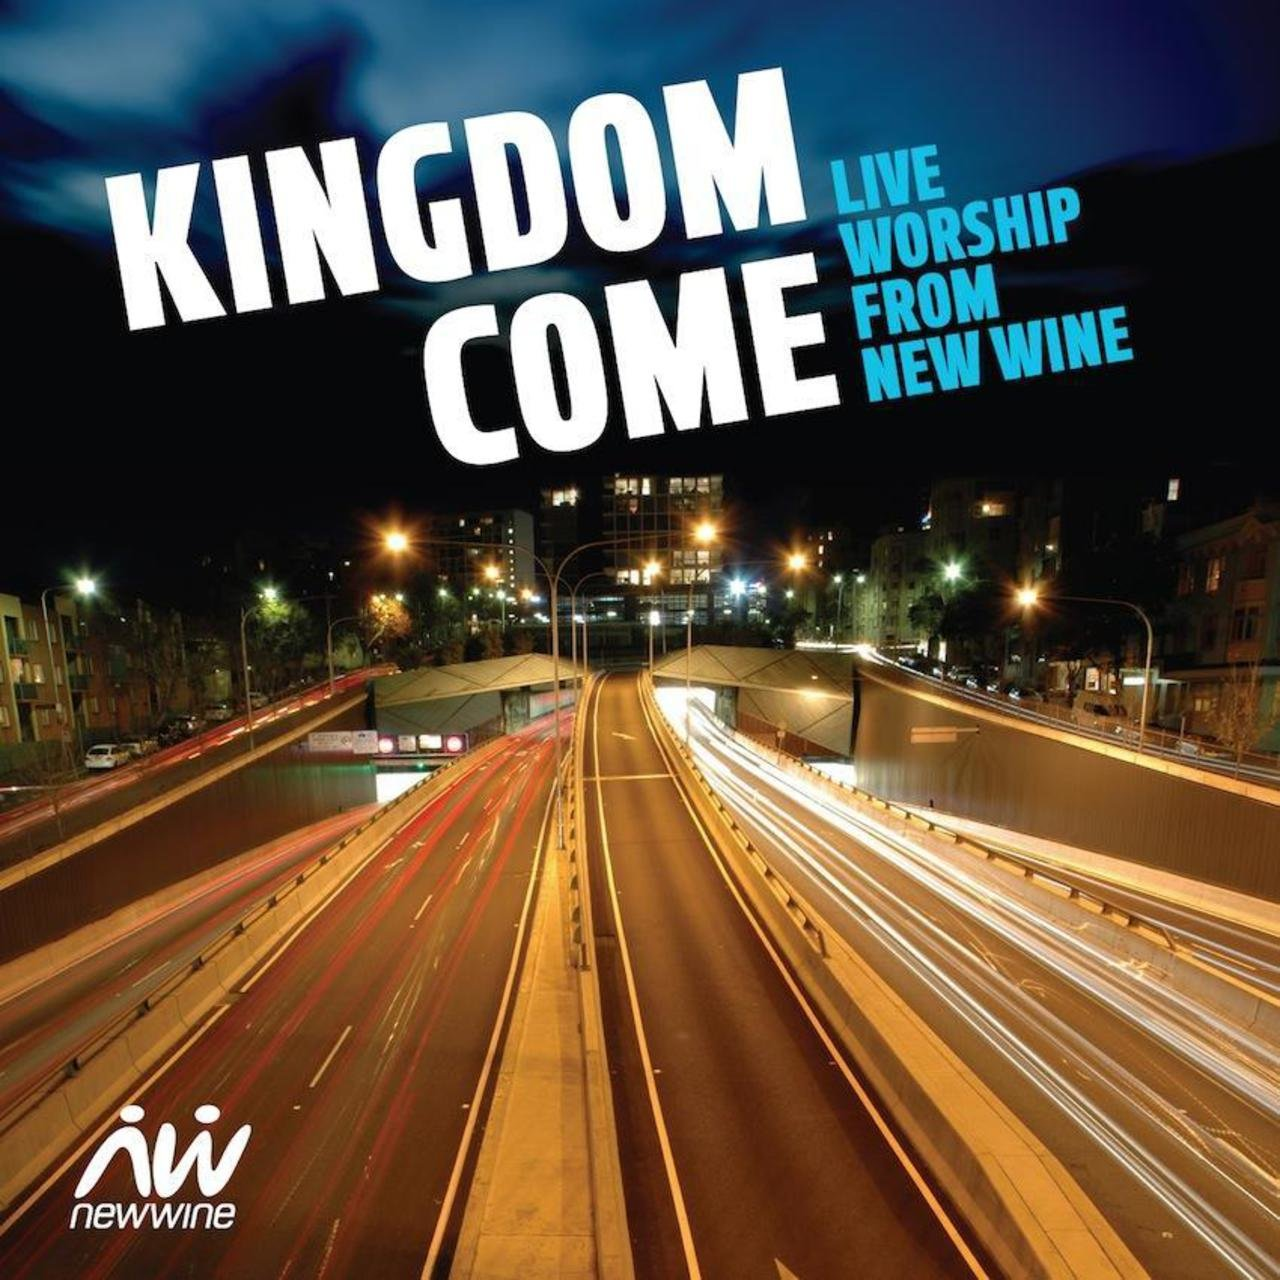 Kingdom Come: Live Worship from New Wine